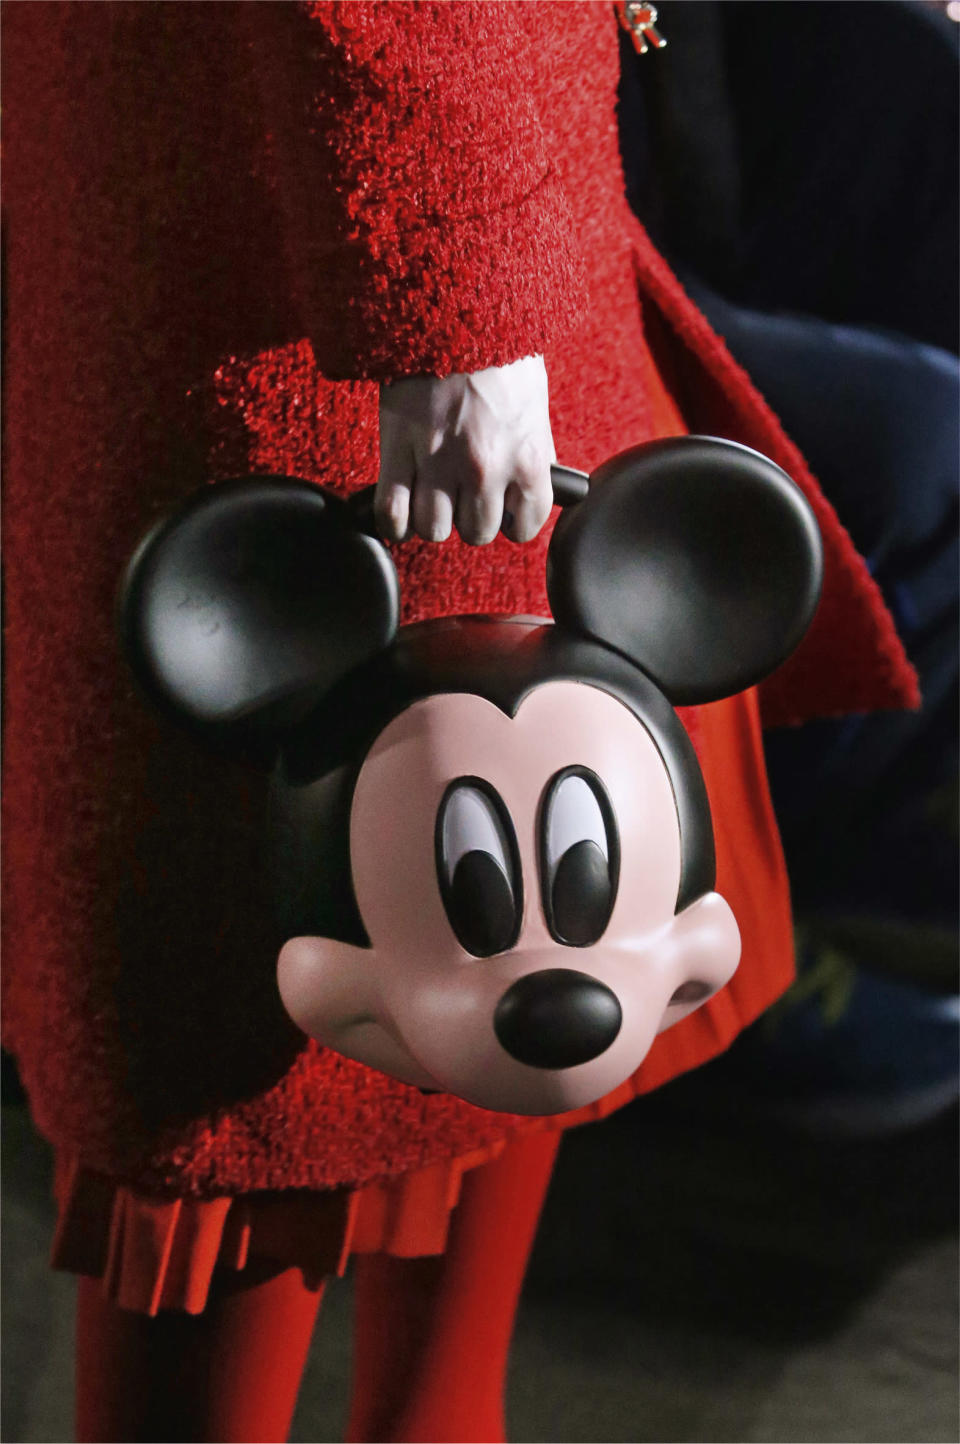 Gucci x Mickey Mouse. (PHOTO: Dover Street Market Singapore)